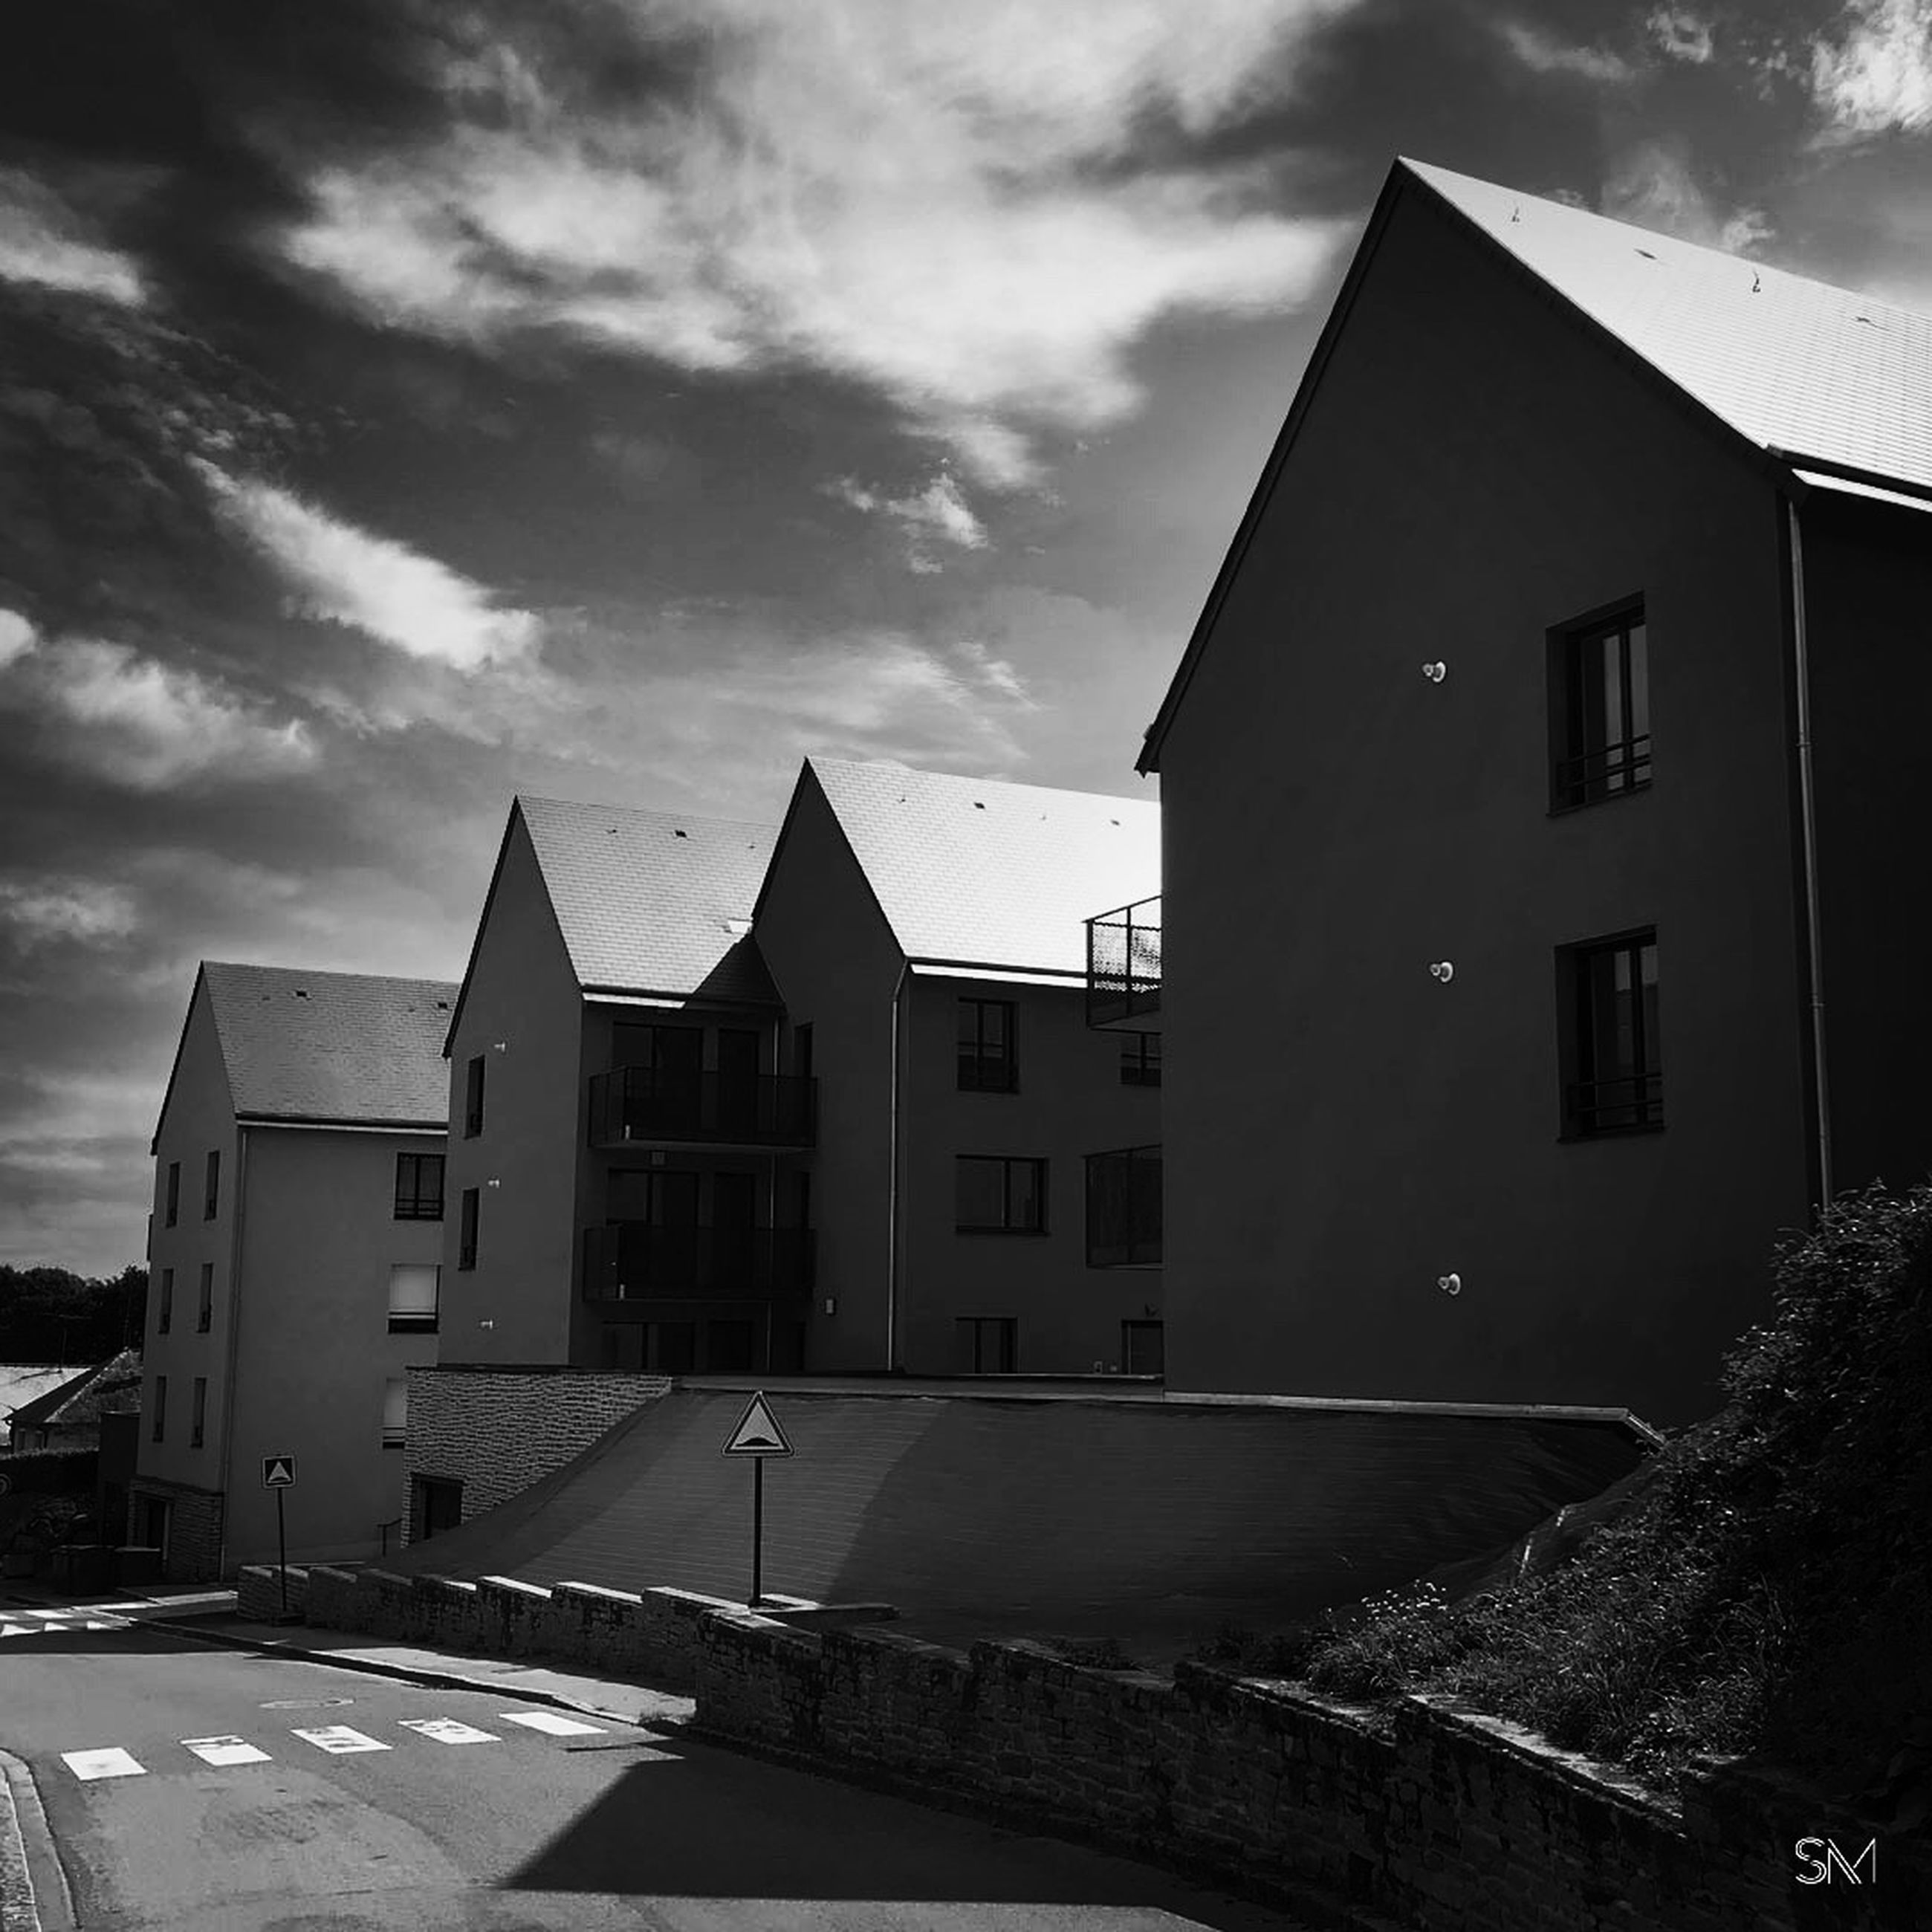 architecture, built structure, building exterior, house, building, black and white, darkness, black, sky, monochrome, white, cloud, monochrome photography, light, residential district, city, no people, nature, night, street, outdoors, road, transportation